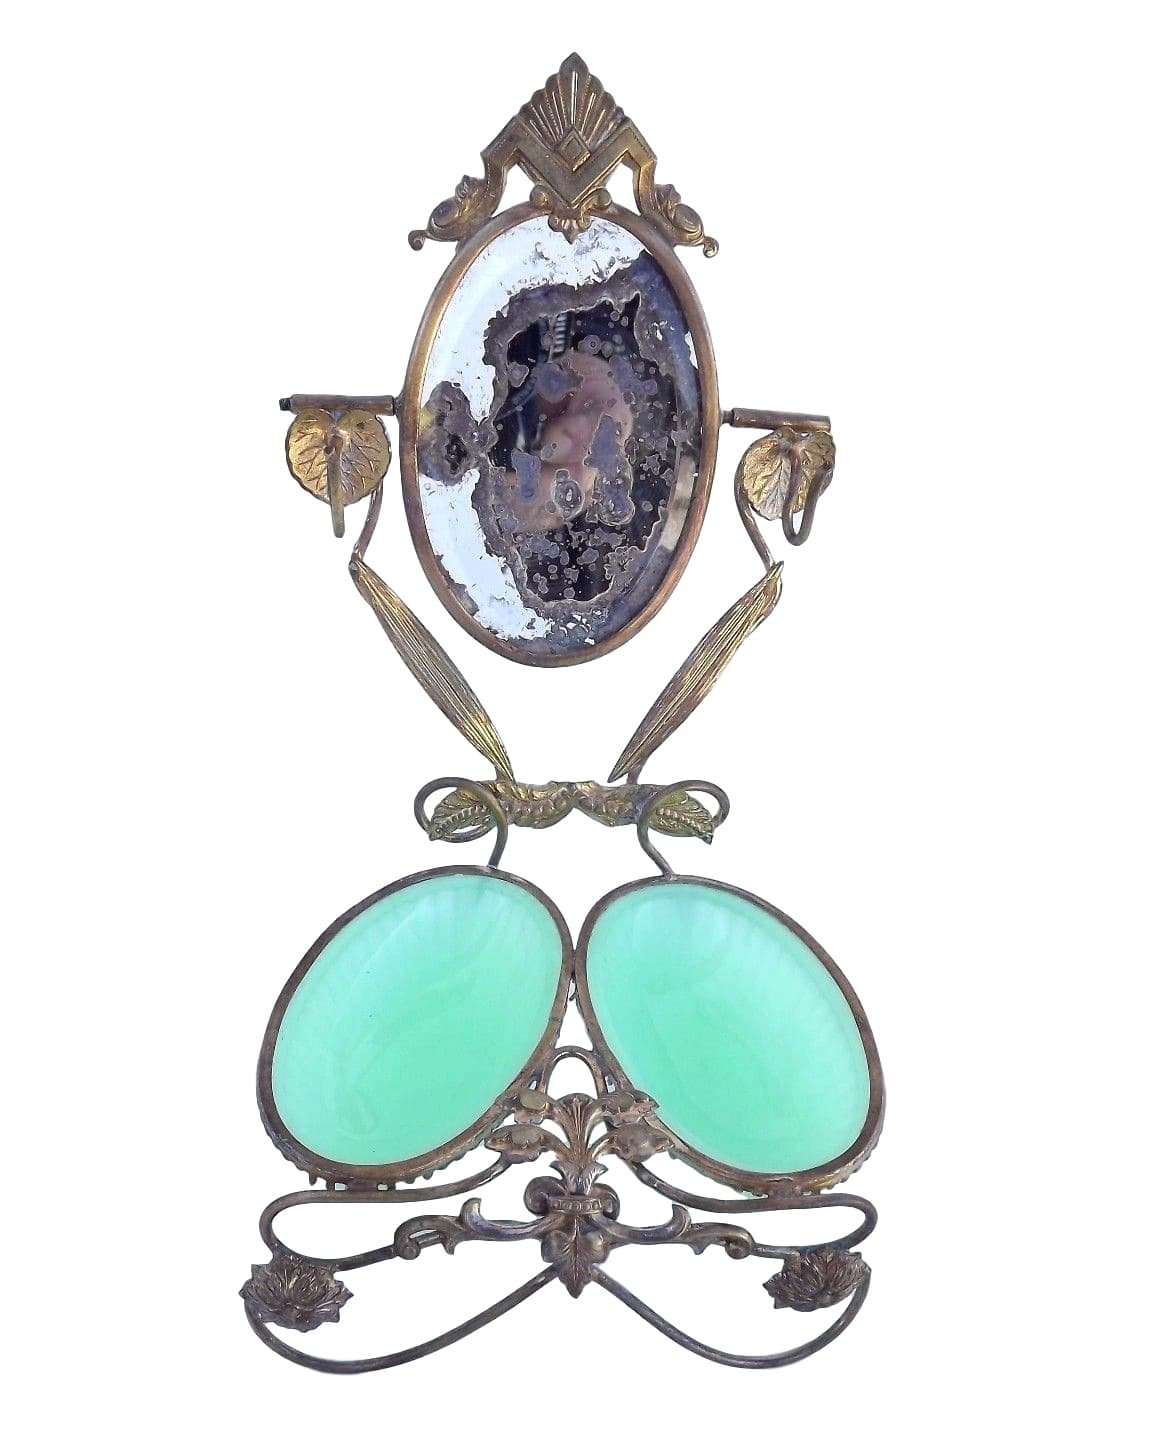 Antique French Mirror Green Opaline Ring Holder - Ormolu Brass & Green Glass Casket Box - Egg Shape Mirror Jewelry